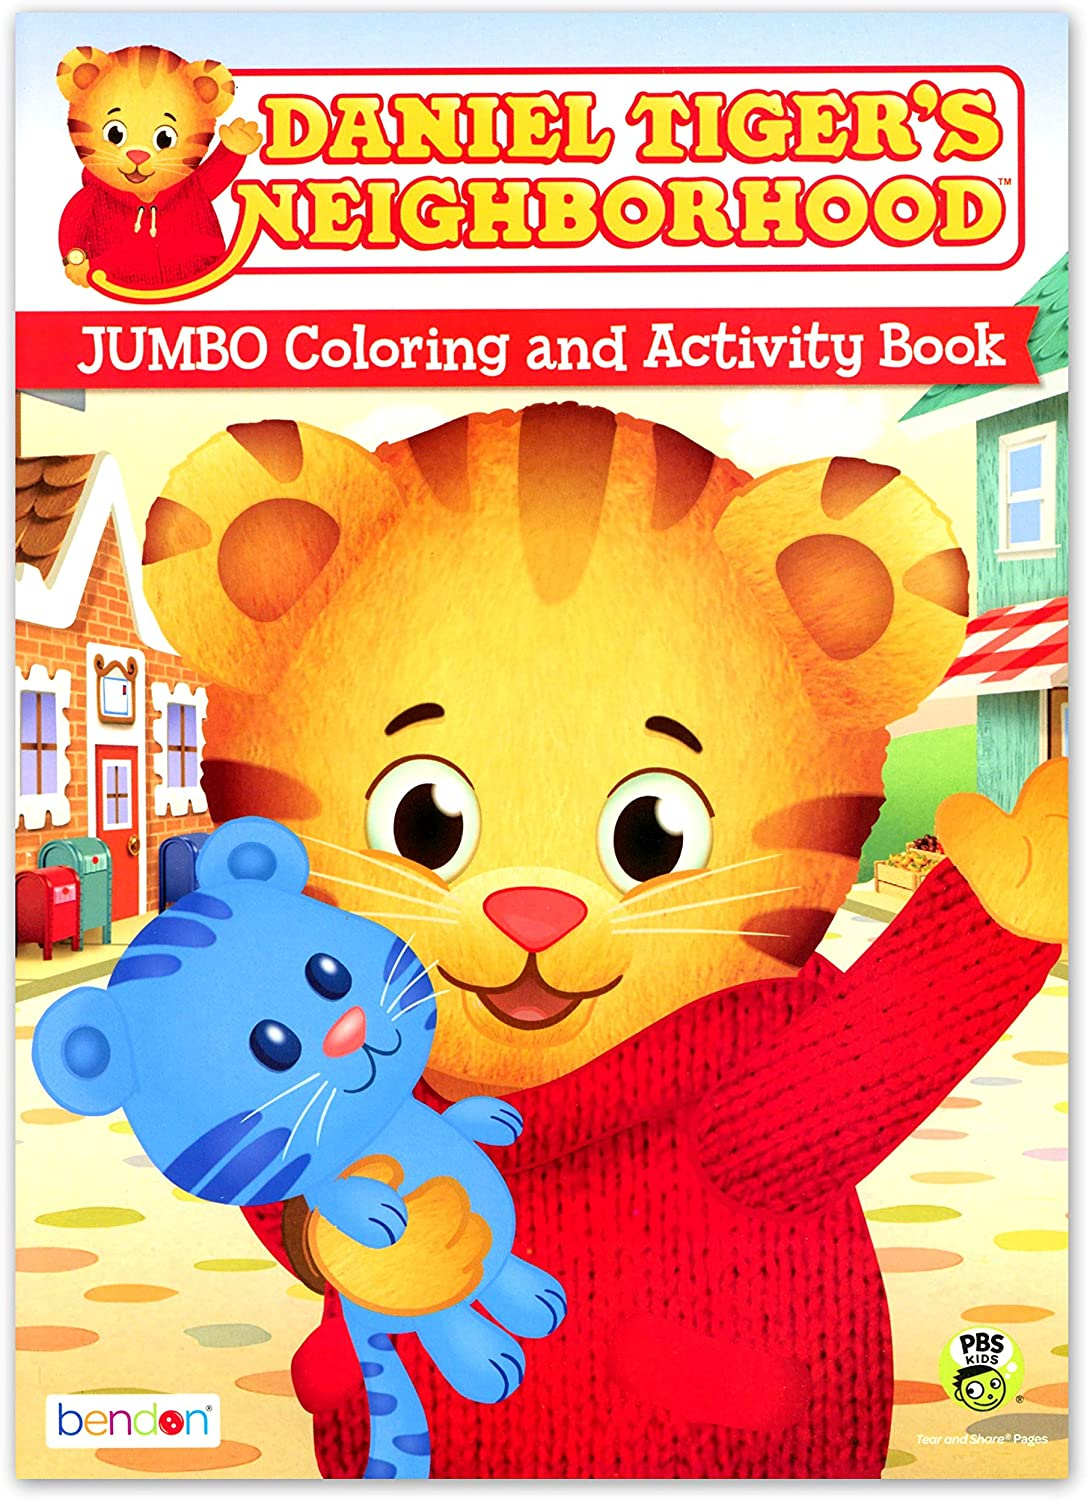 Amazon Com Daniel Tiger S Neighborhood Jumbo Coloring Activity Book By Pbs Kids Fred Rogers Toys Games